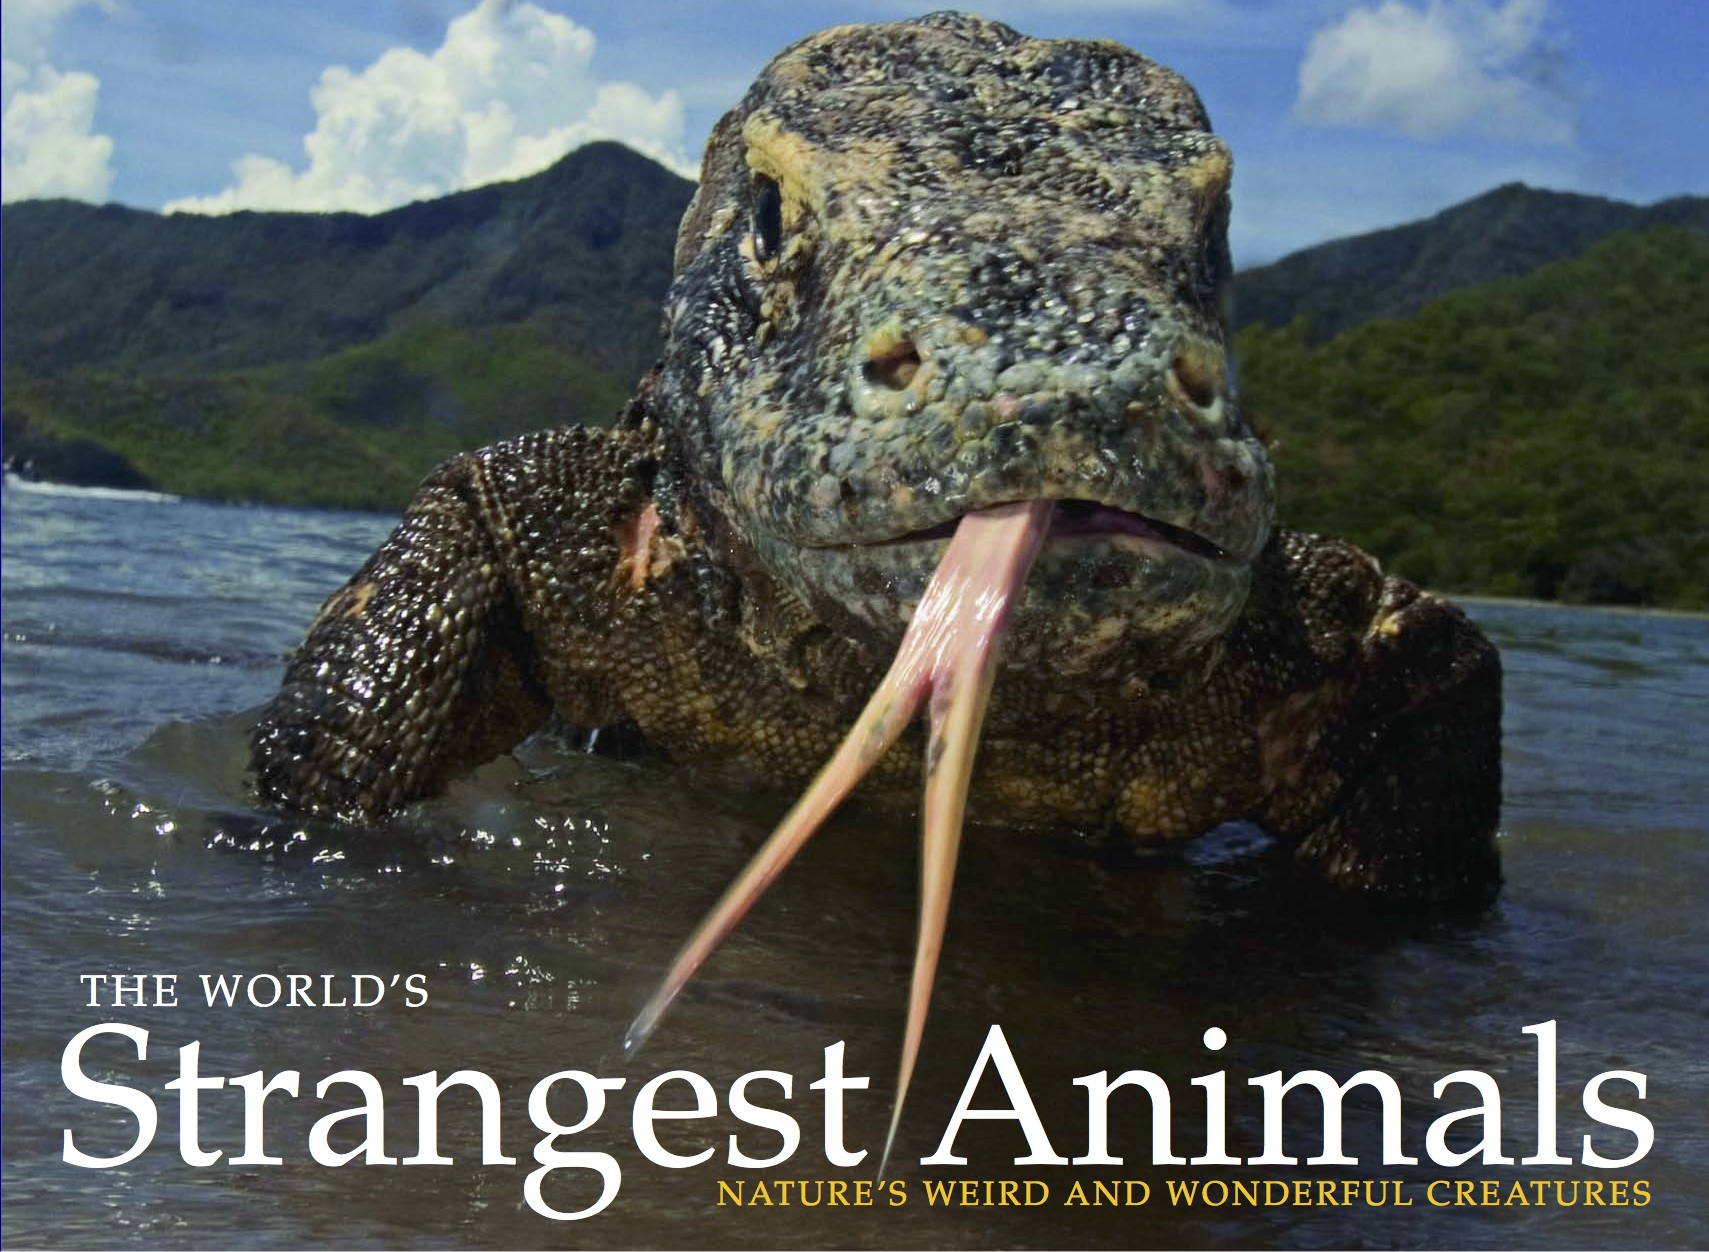 The World's Strangest Animals